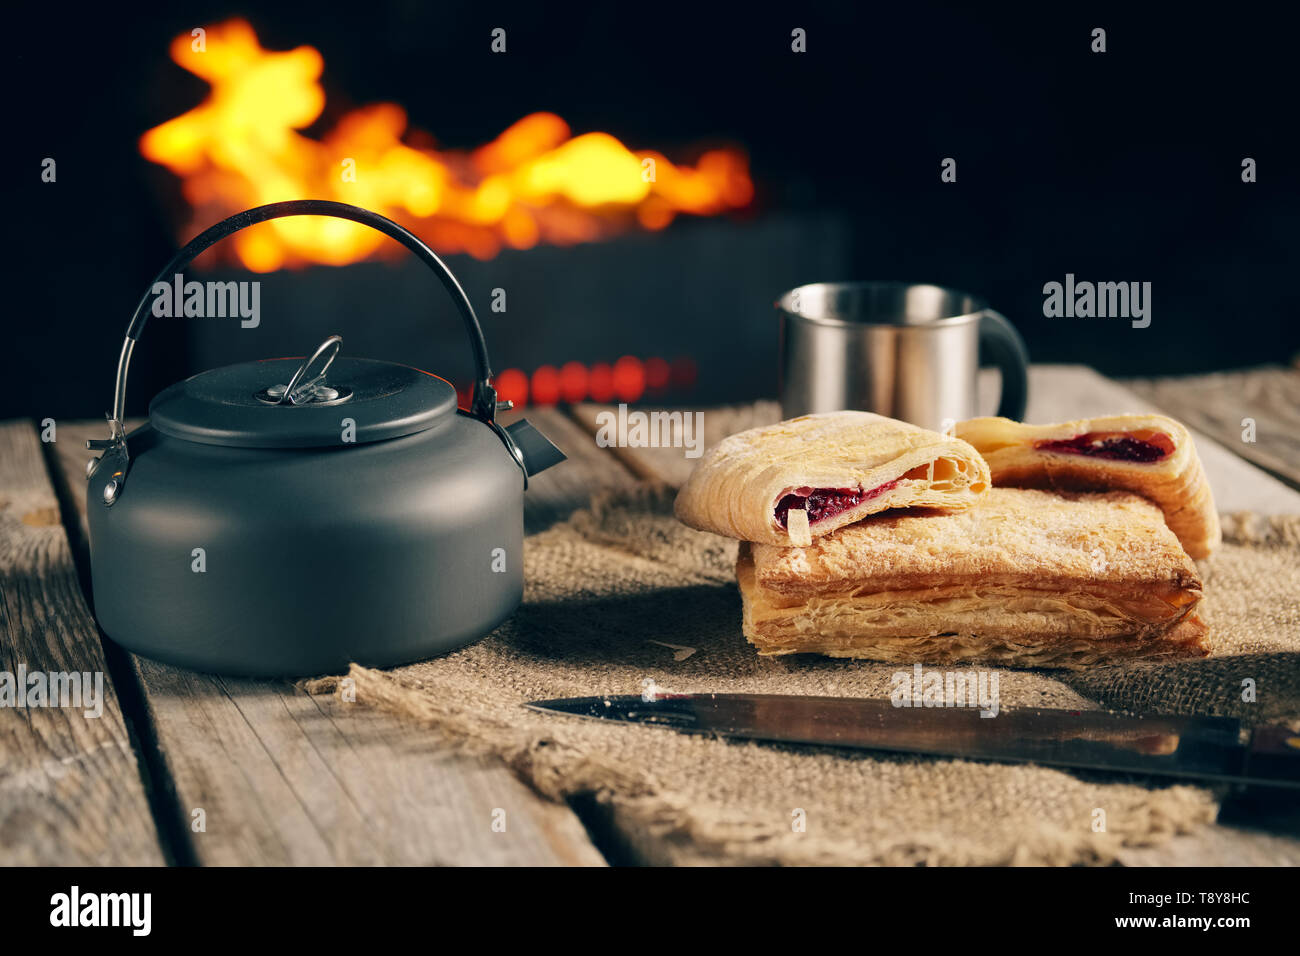 Late snack for two at night outdoor kamping - biscuit and tea near fireplace. - Stock Image